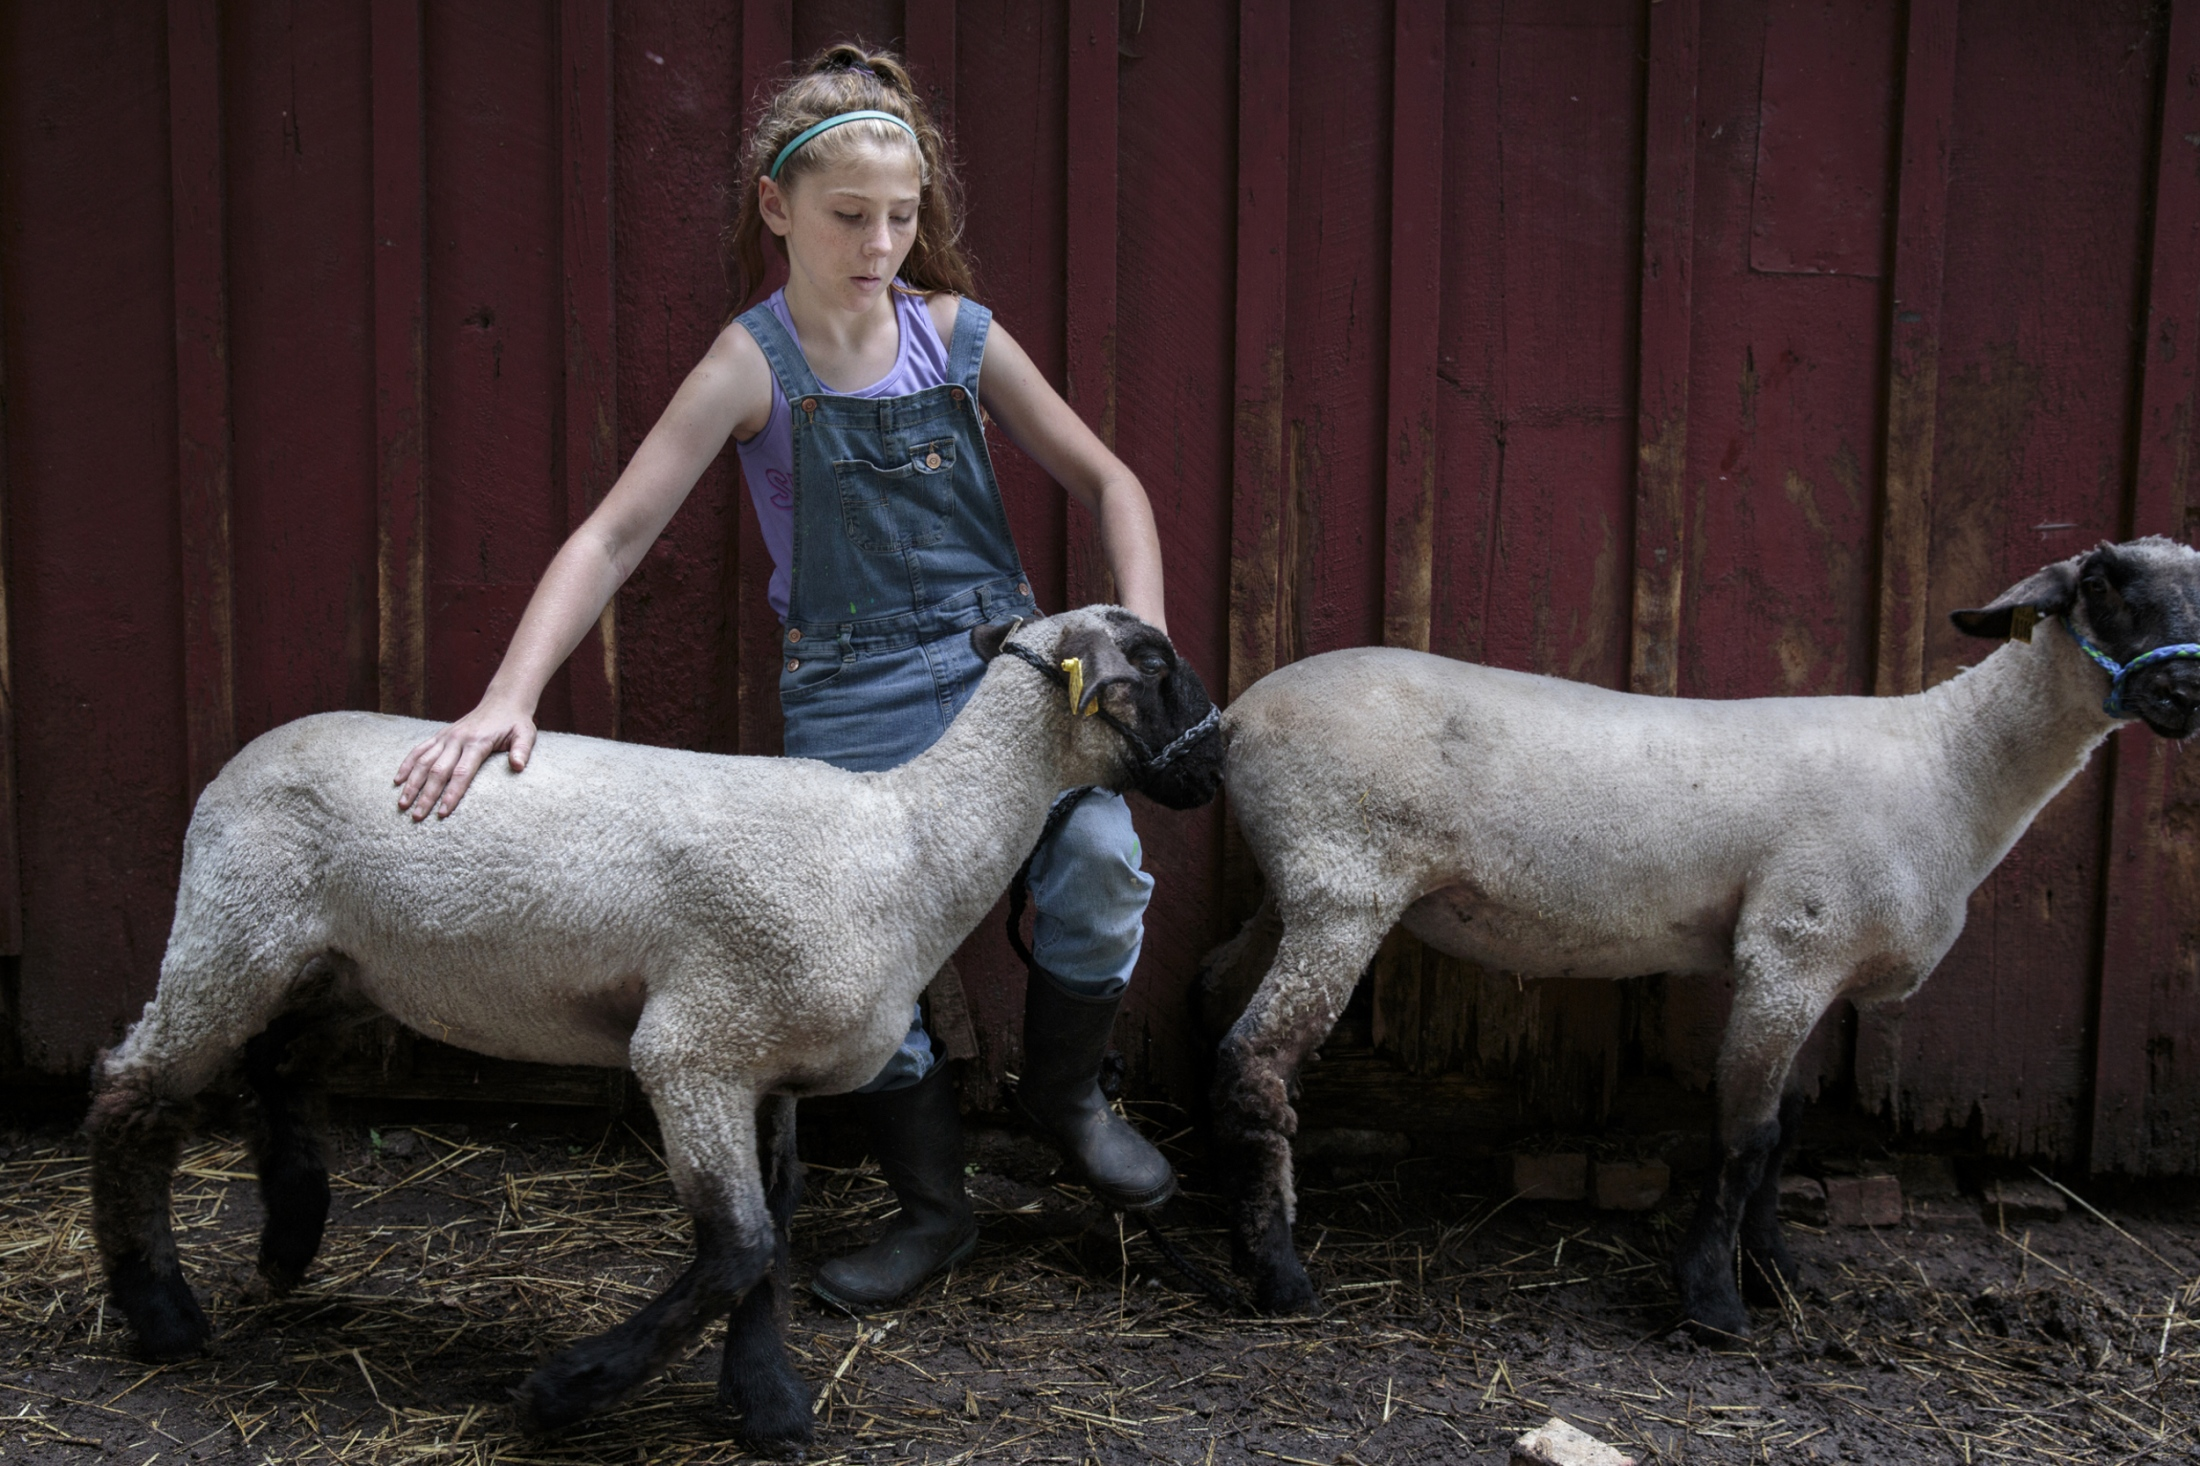 Mackenzie practices putting on a halter on her sheep Gunter and Rosita at her father's house. Mackenzie and her older brother Harkin Bartlett, 12, live with their mother and grandparents about 45 minutes south of their father Chad's home in Twin Lake. Since April, the siblings have visited their father's house every other weekend and worked together to raise market animals to show and sell at the county fair.